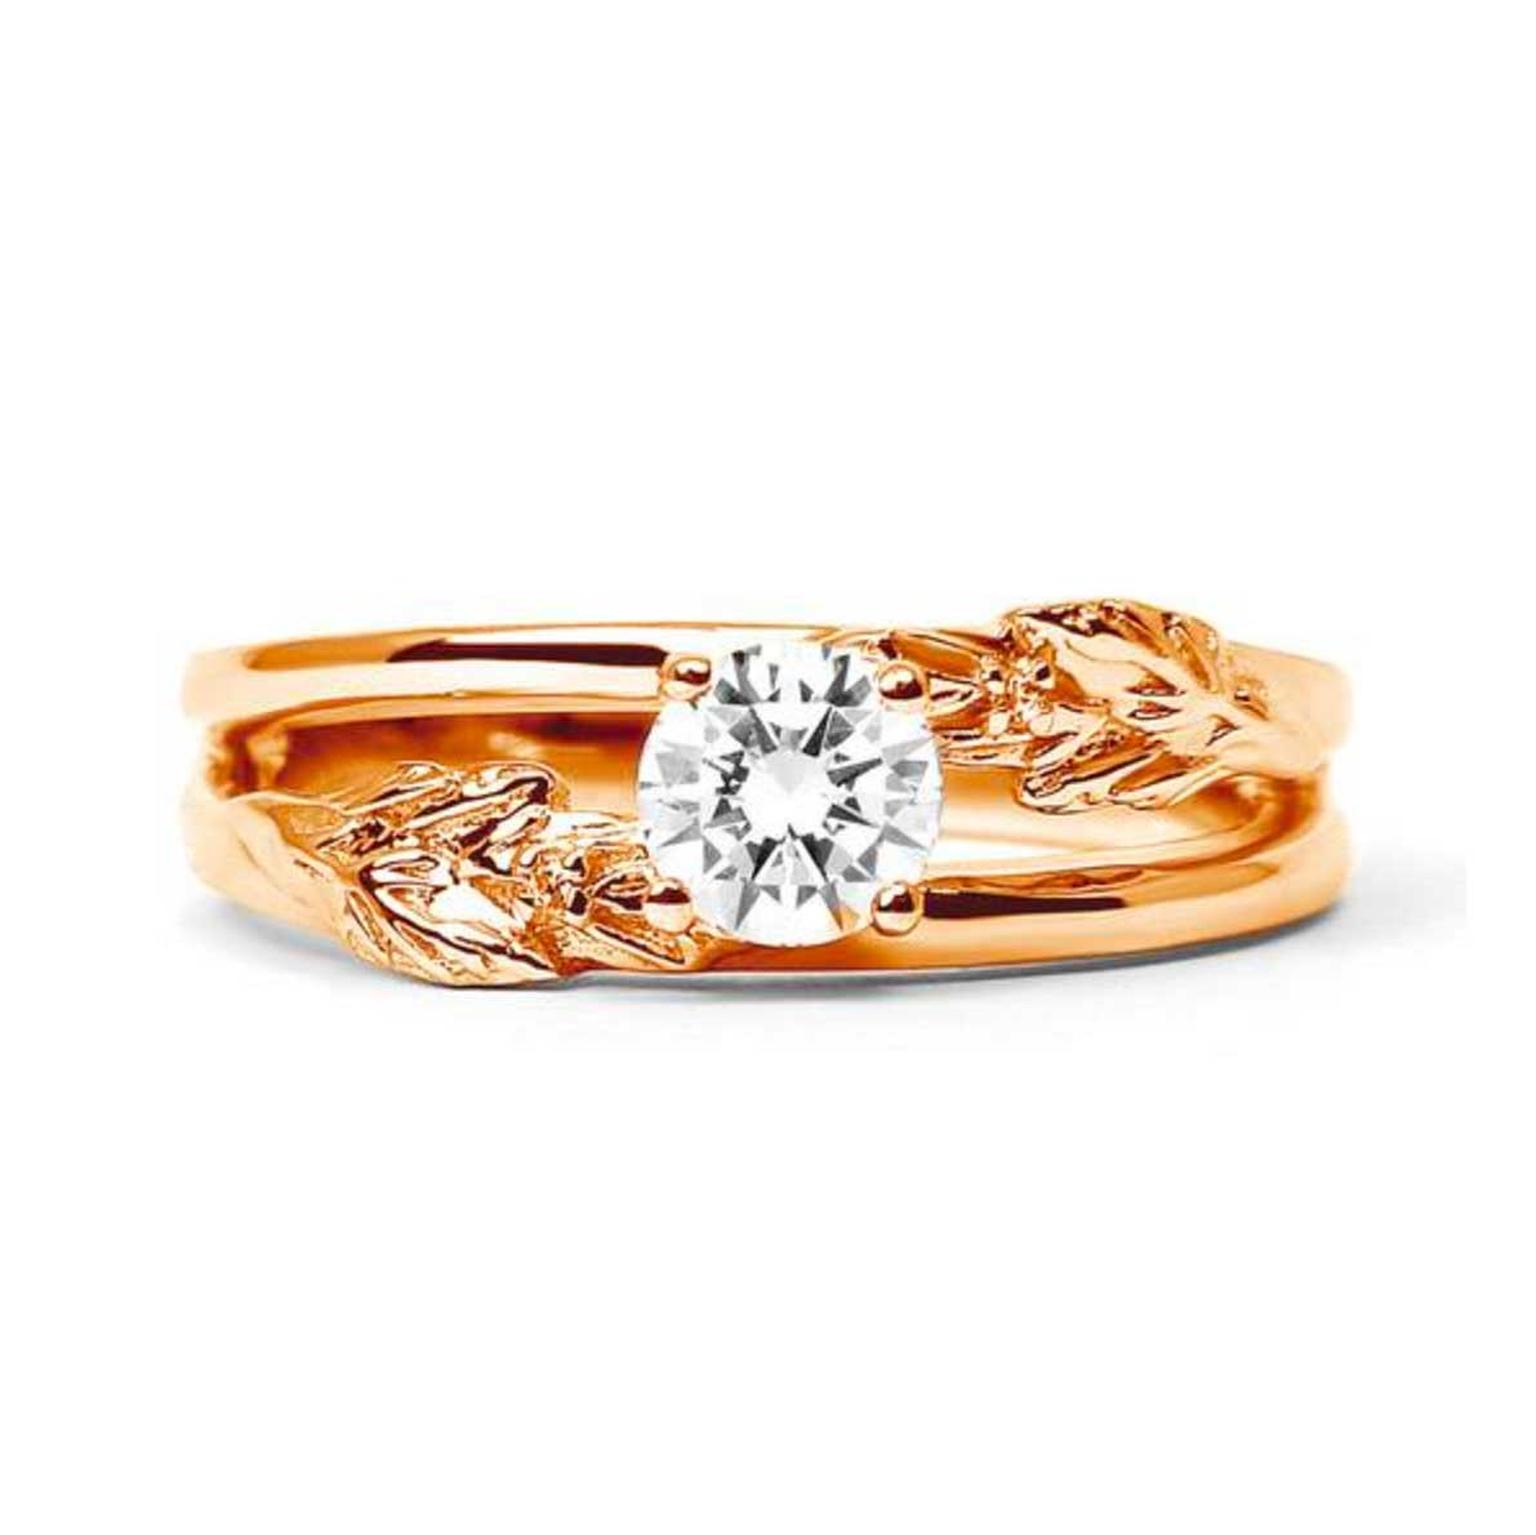 Arabel Lebrusan Royal Oak ethical diamond engagement ring in Fairtrade gold